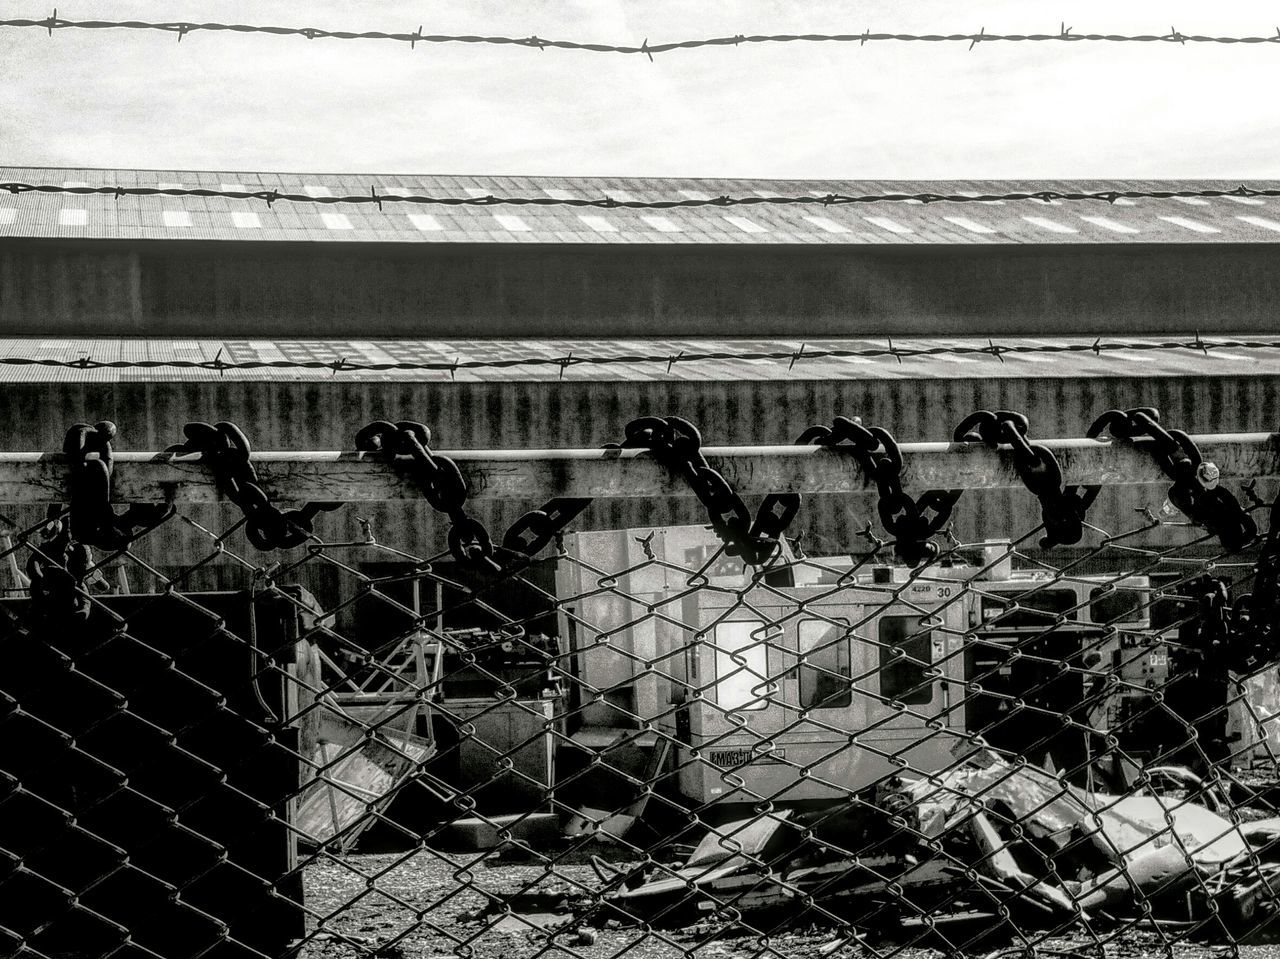 Chained Link Fence Black And White Industrial Industrial Landscapes Salvage Monochrome Broken Sunlight Composition In Gray Heavy Laden Metal Steel Iron